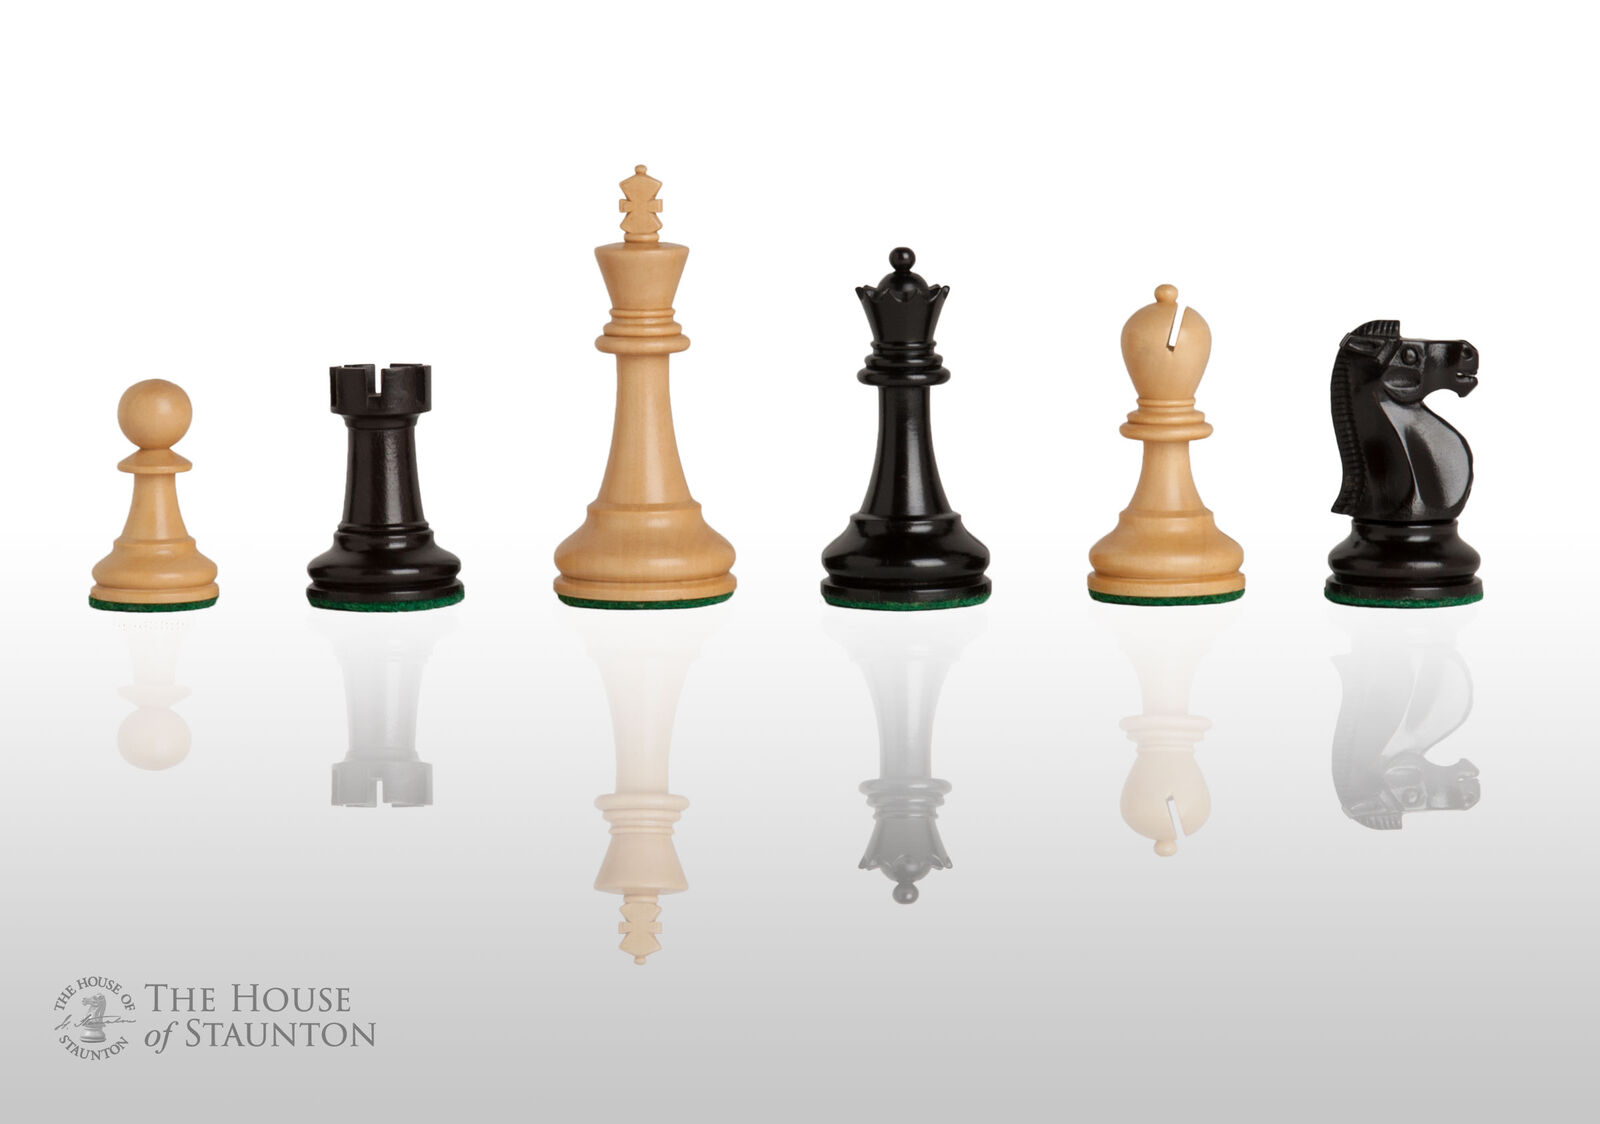 USCF Sales The Reykjavik II Chess Set - Pieces  Only - 3.75  re - Ebonized scatolaw  colorways incredibili